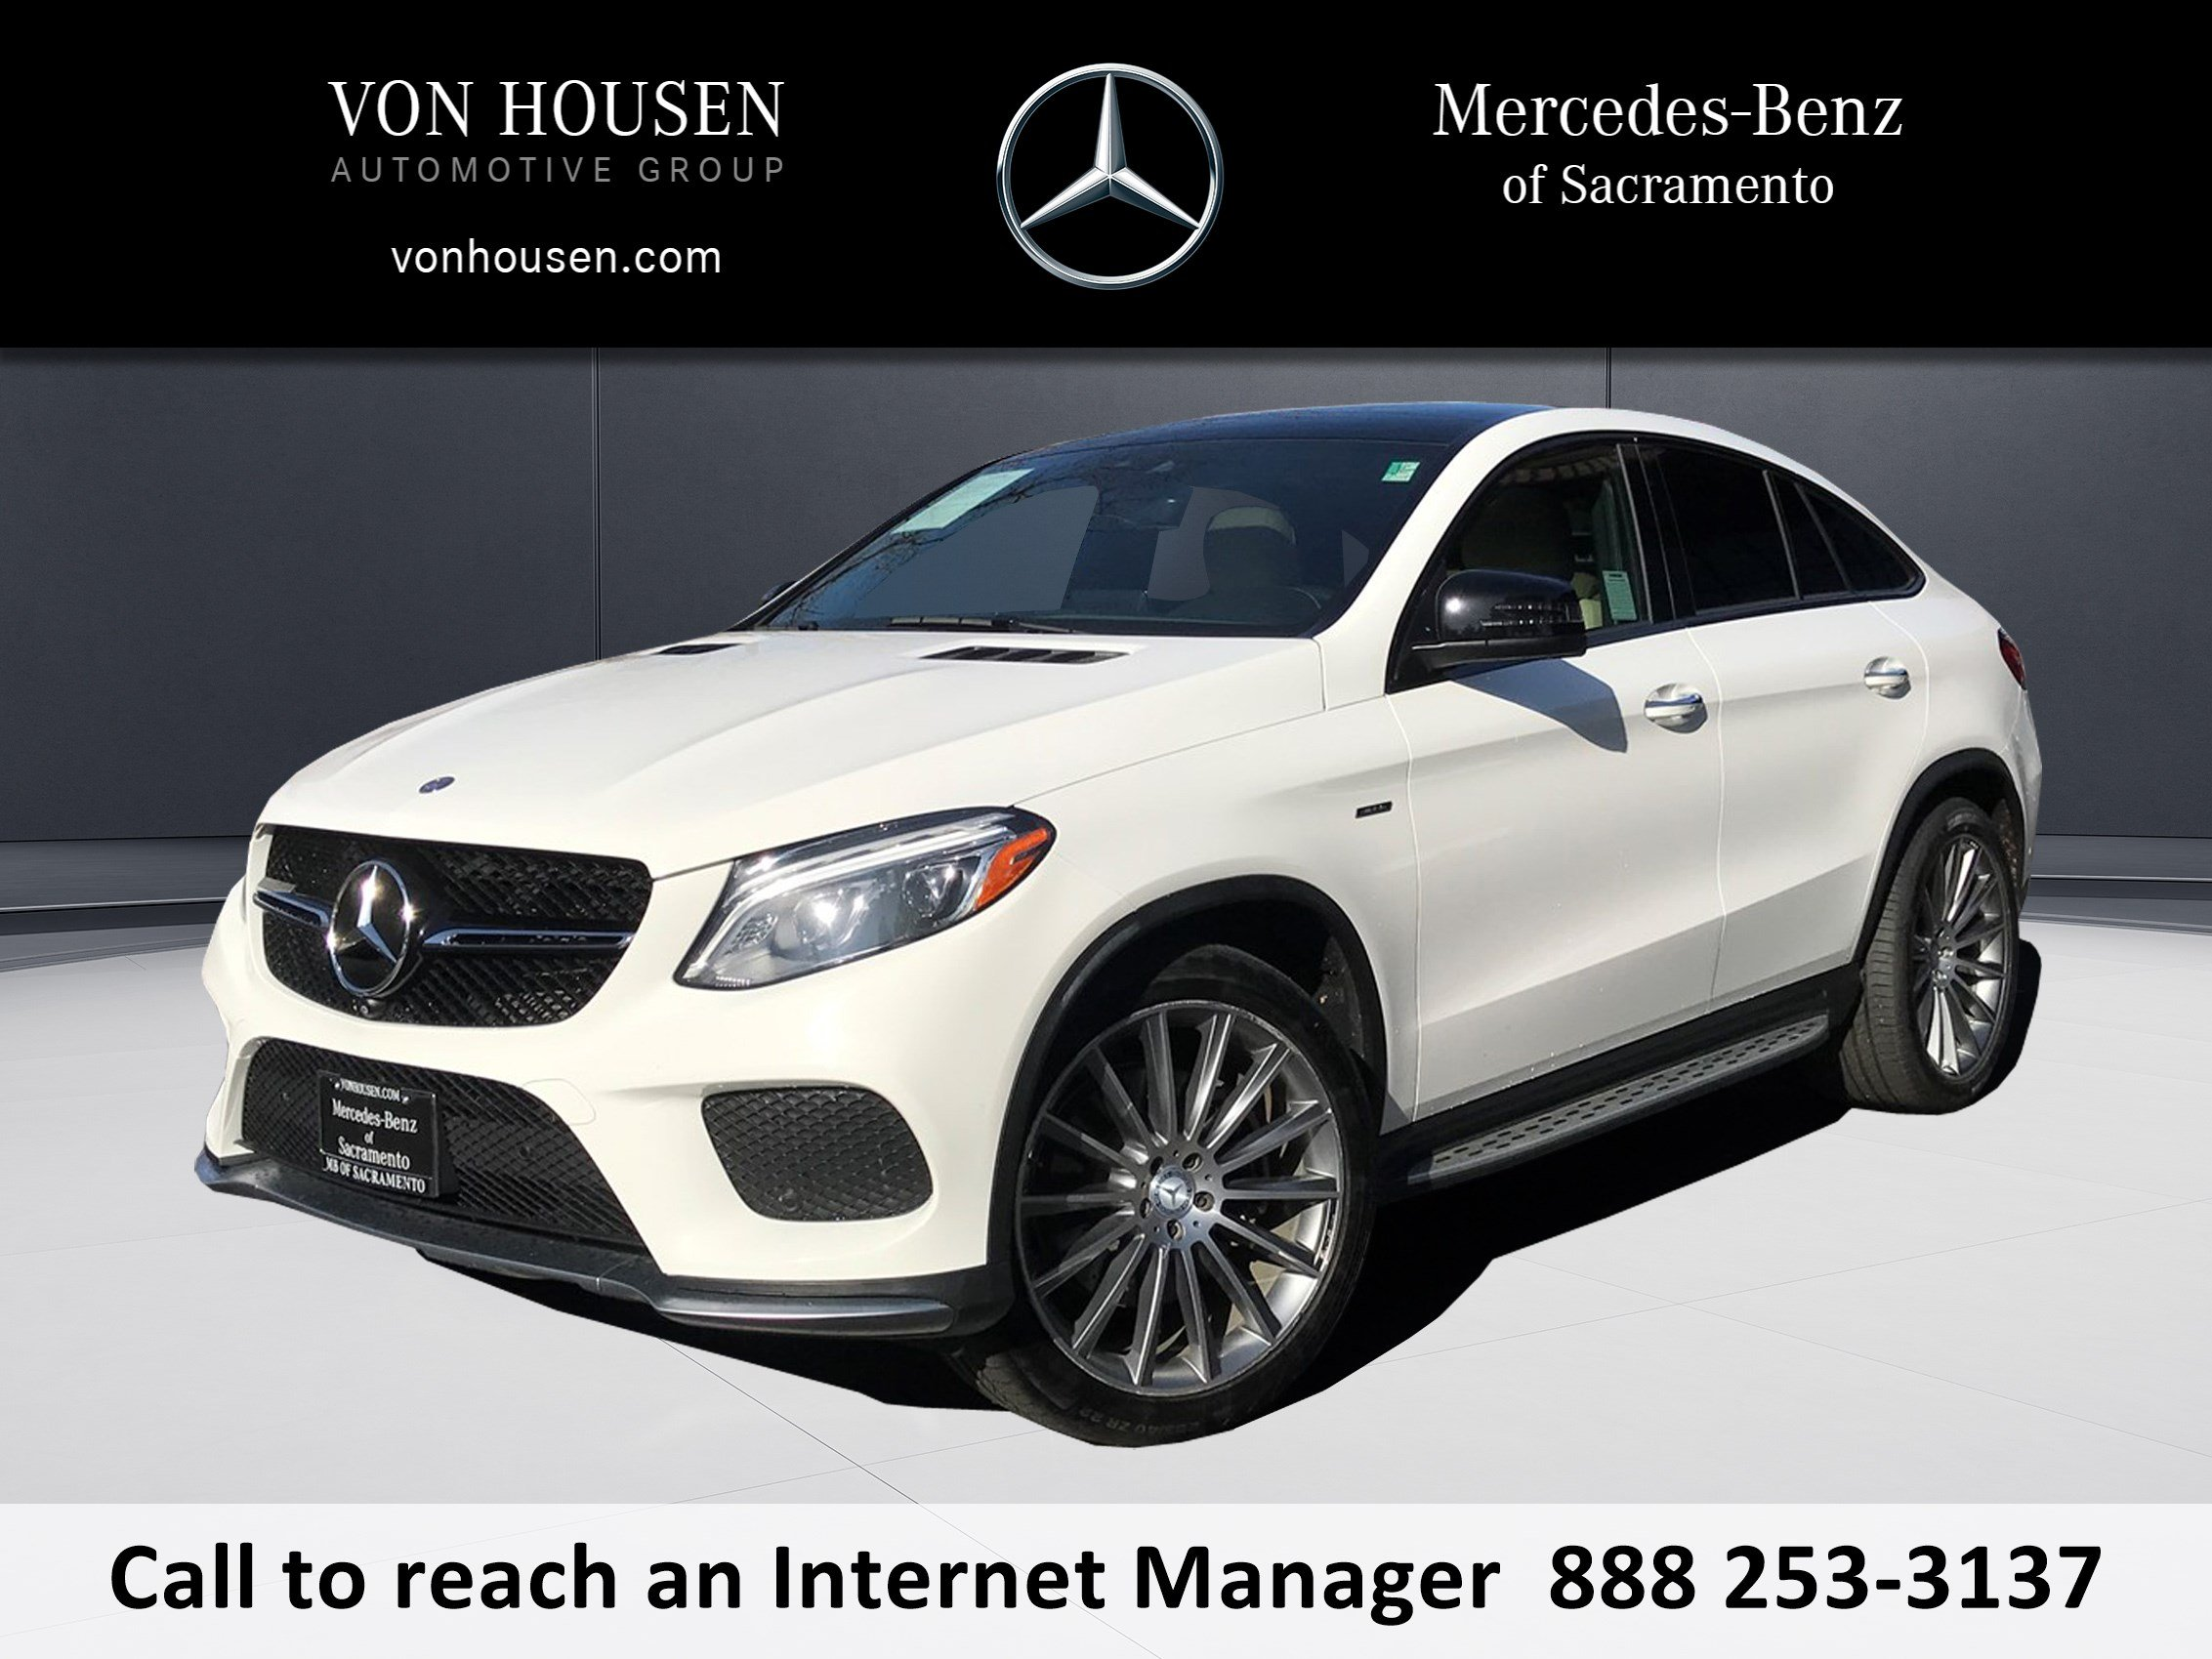 Certified Pre Owned 2016 Mercedes Benz GLE GLE 450 COUPE in